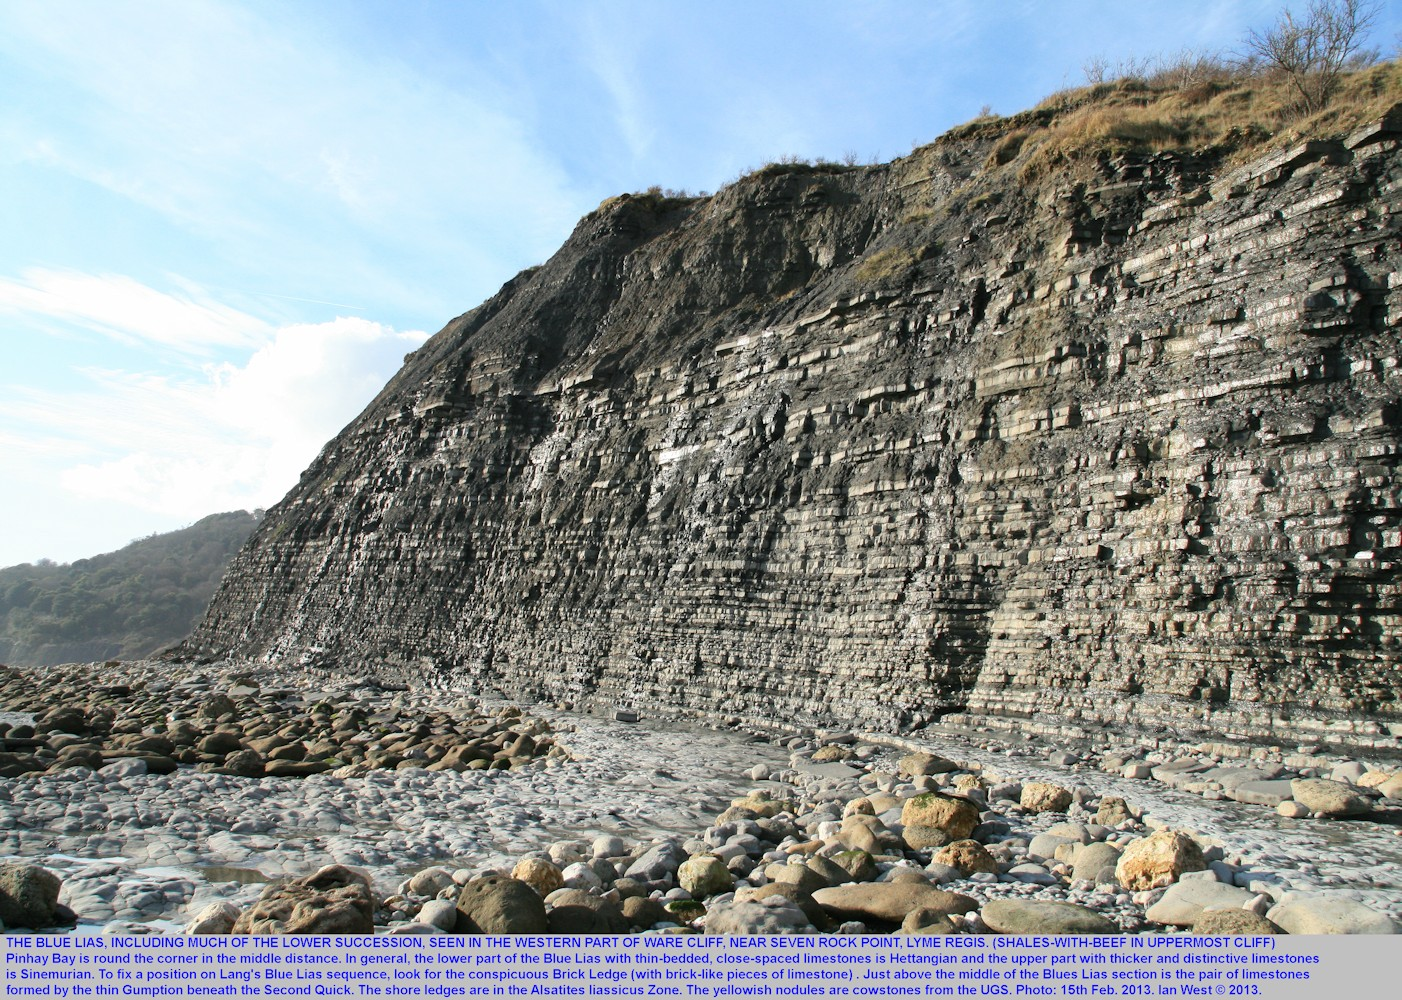 A major sequence of the Blue Lias with both Hettangian and Sinemurian strata, Ware Cliff near Seven Rock Point, west of Lyme Regis, Dorset